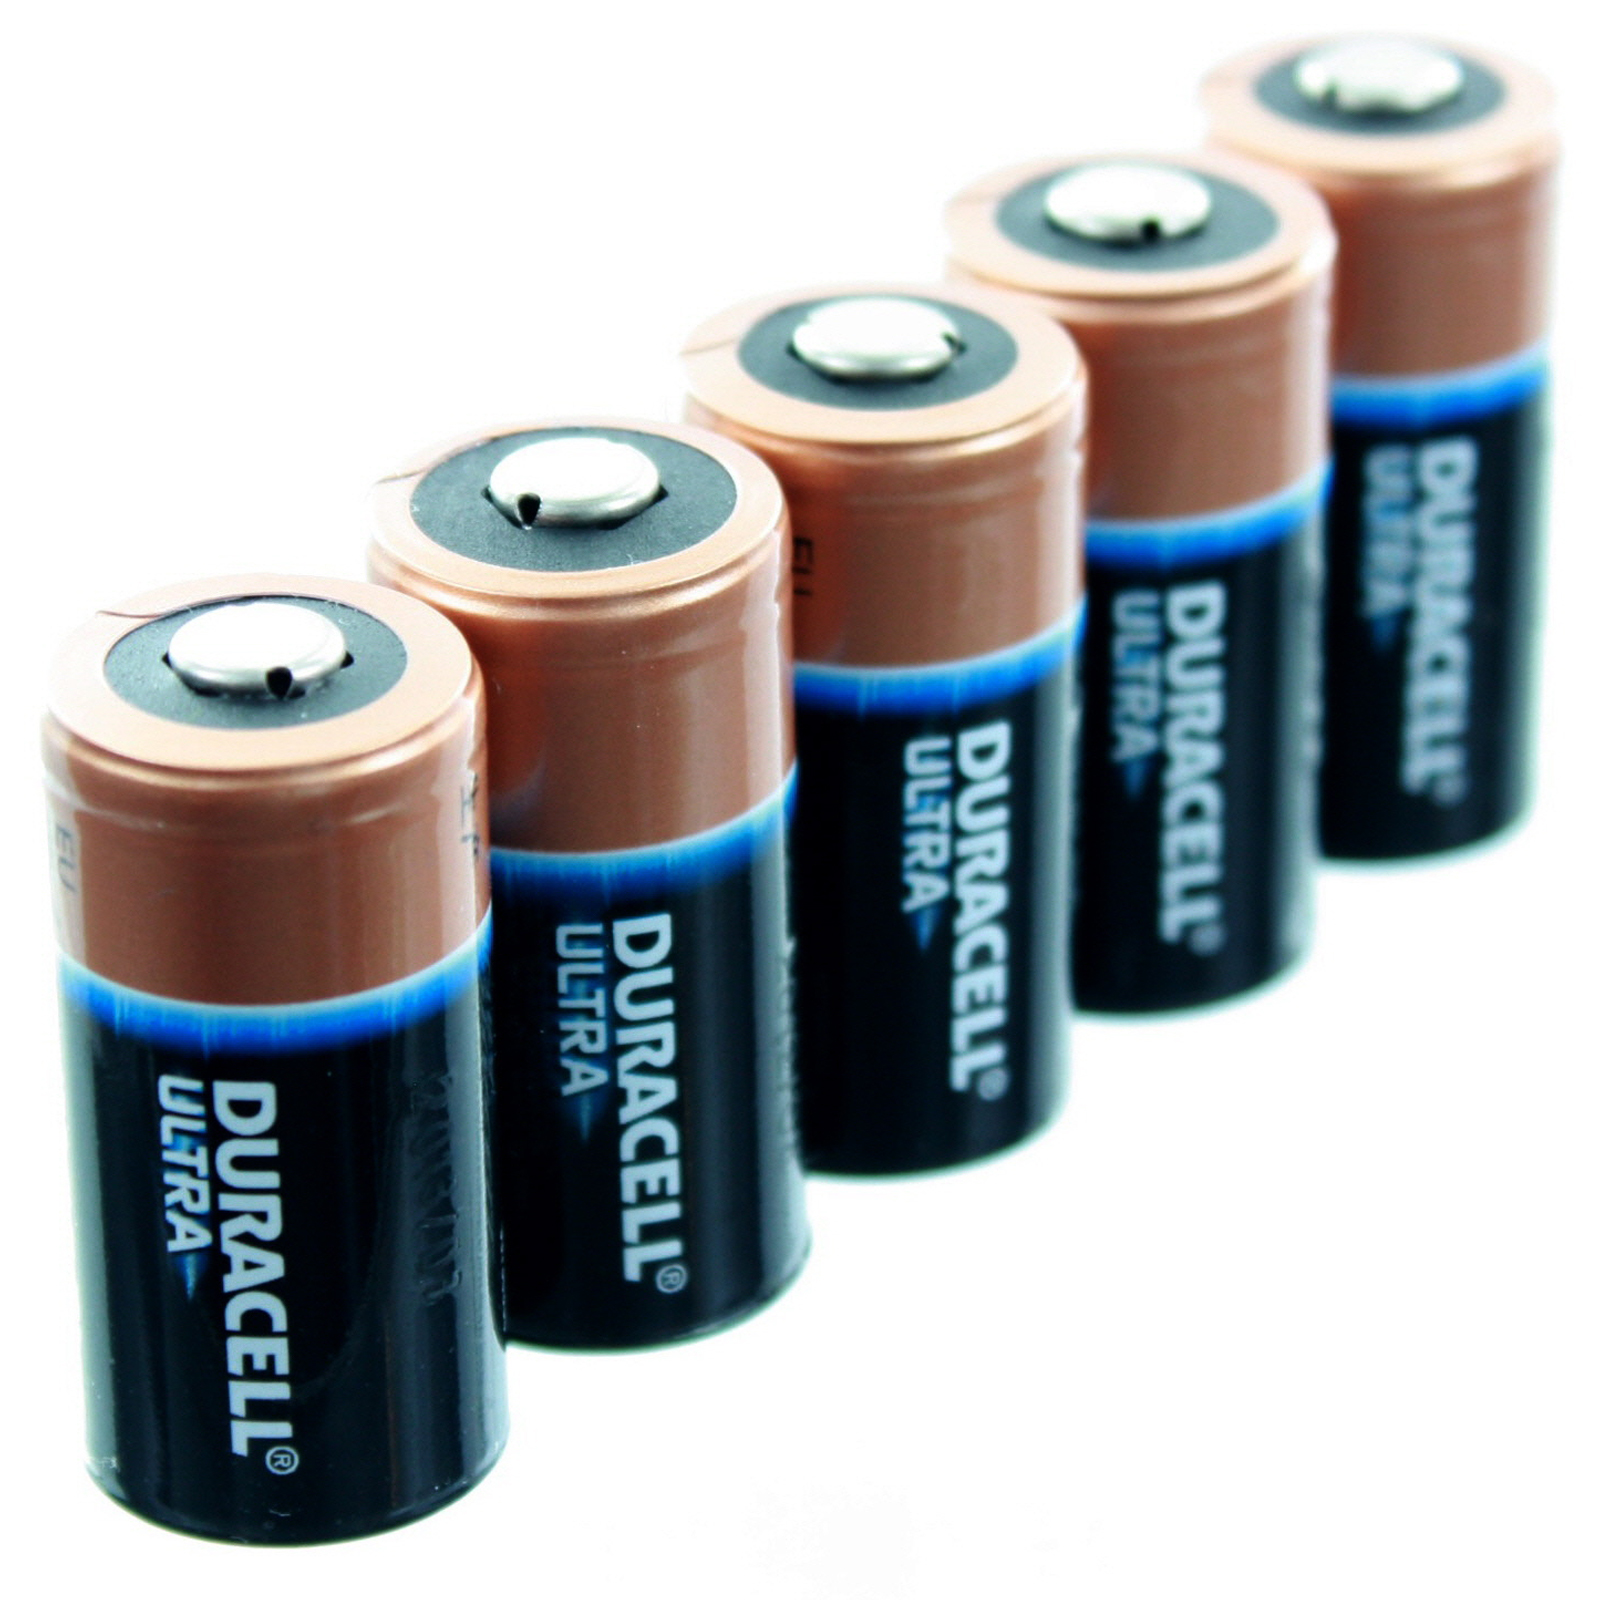 6 duracell ultra dl123a cr123a 3v lithium battery with battery case fast usaship ebay. Black Bedroom Furniture Sets. Home Design Ideas